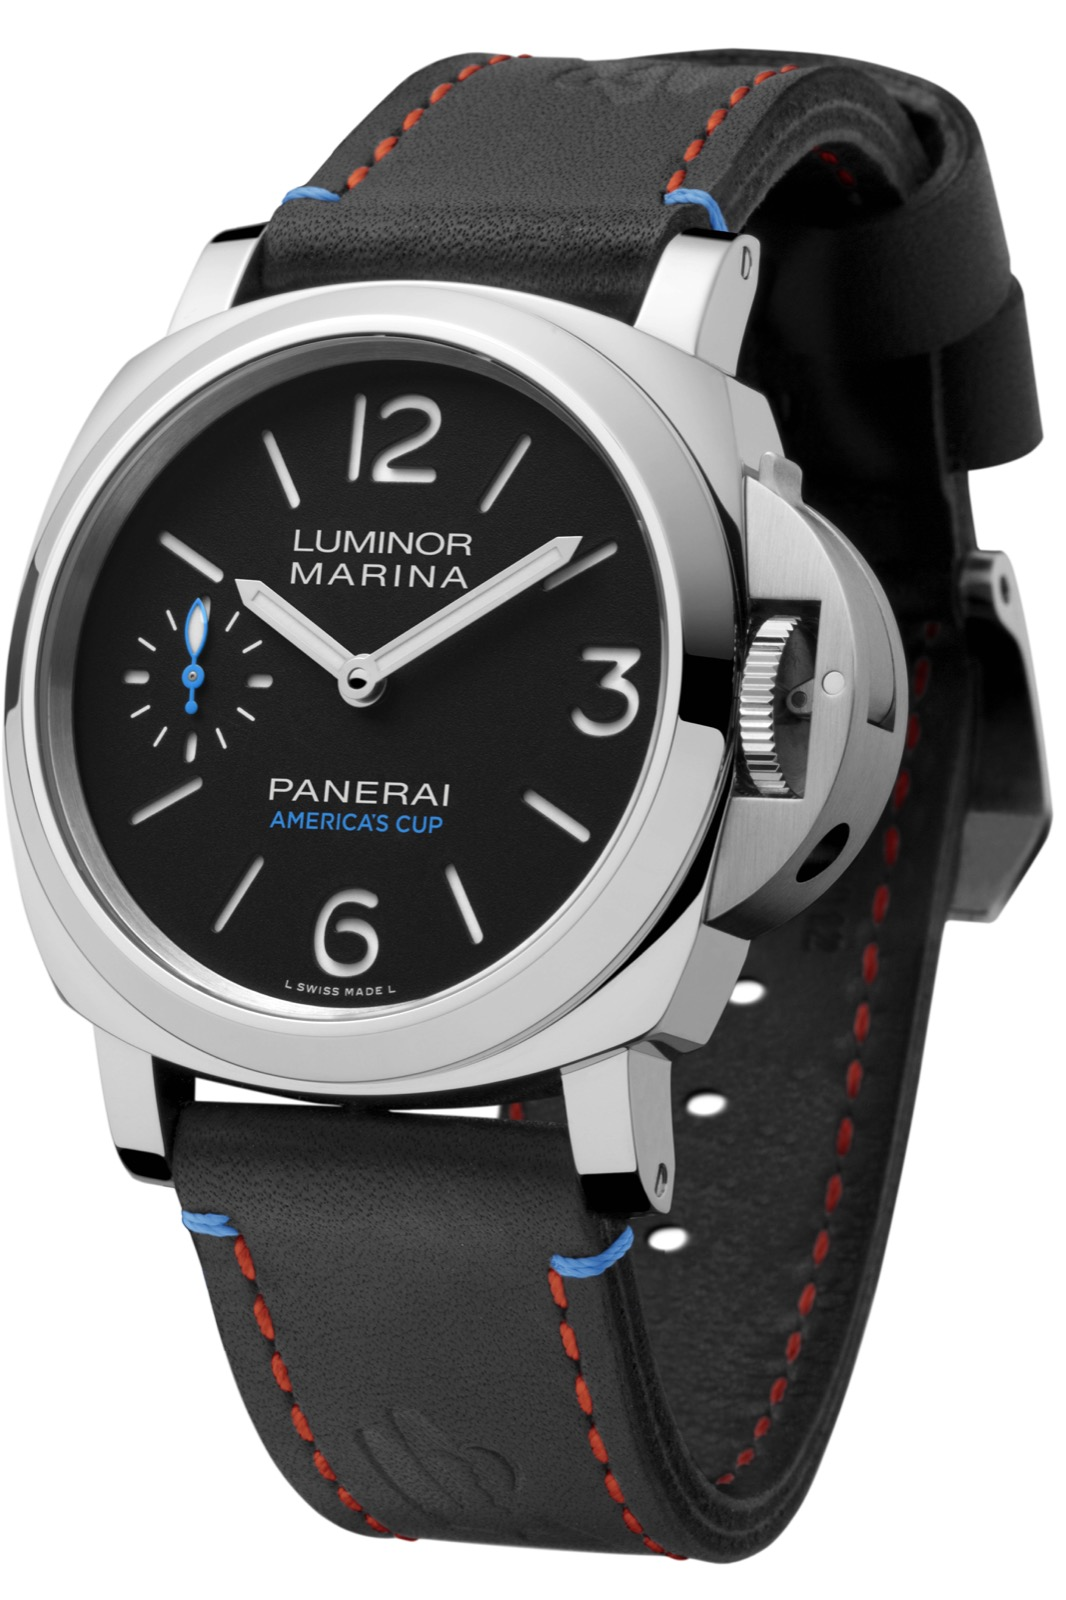 PANERAI LUMINOR MARINA ORACLE TEAM USA 8 DAYS ACCIAIO (PAM724) – 44mm